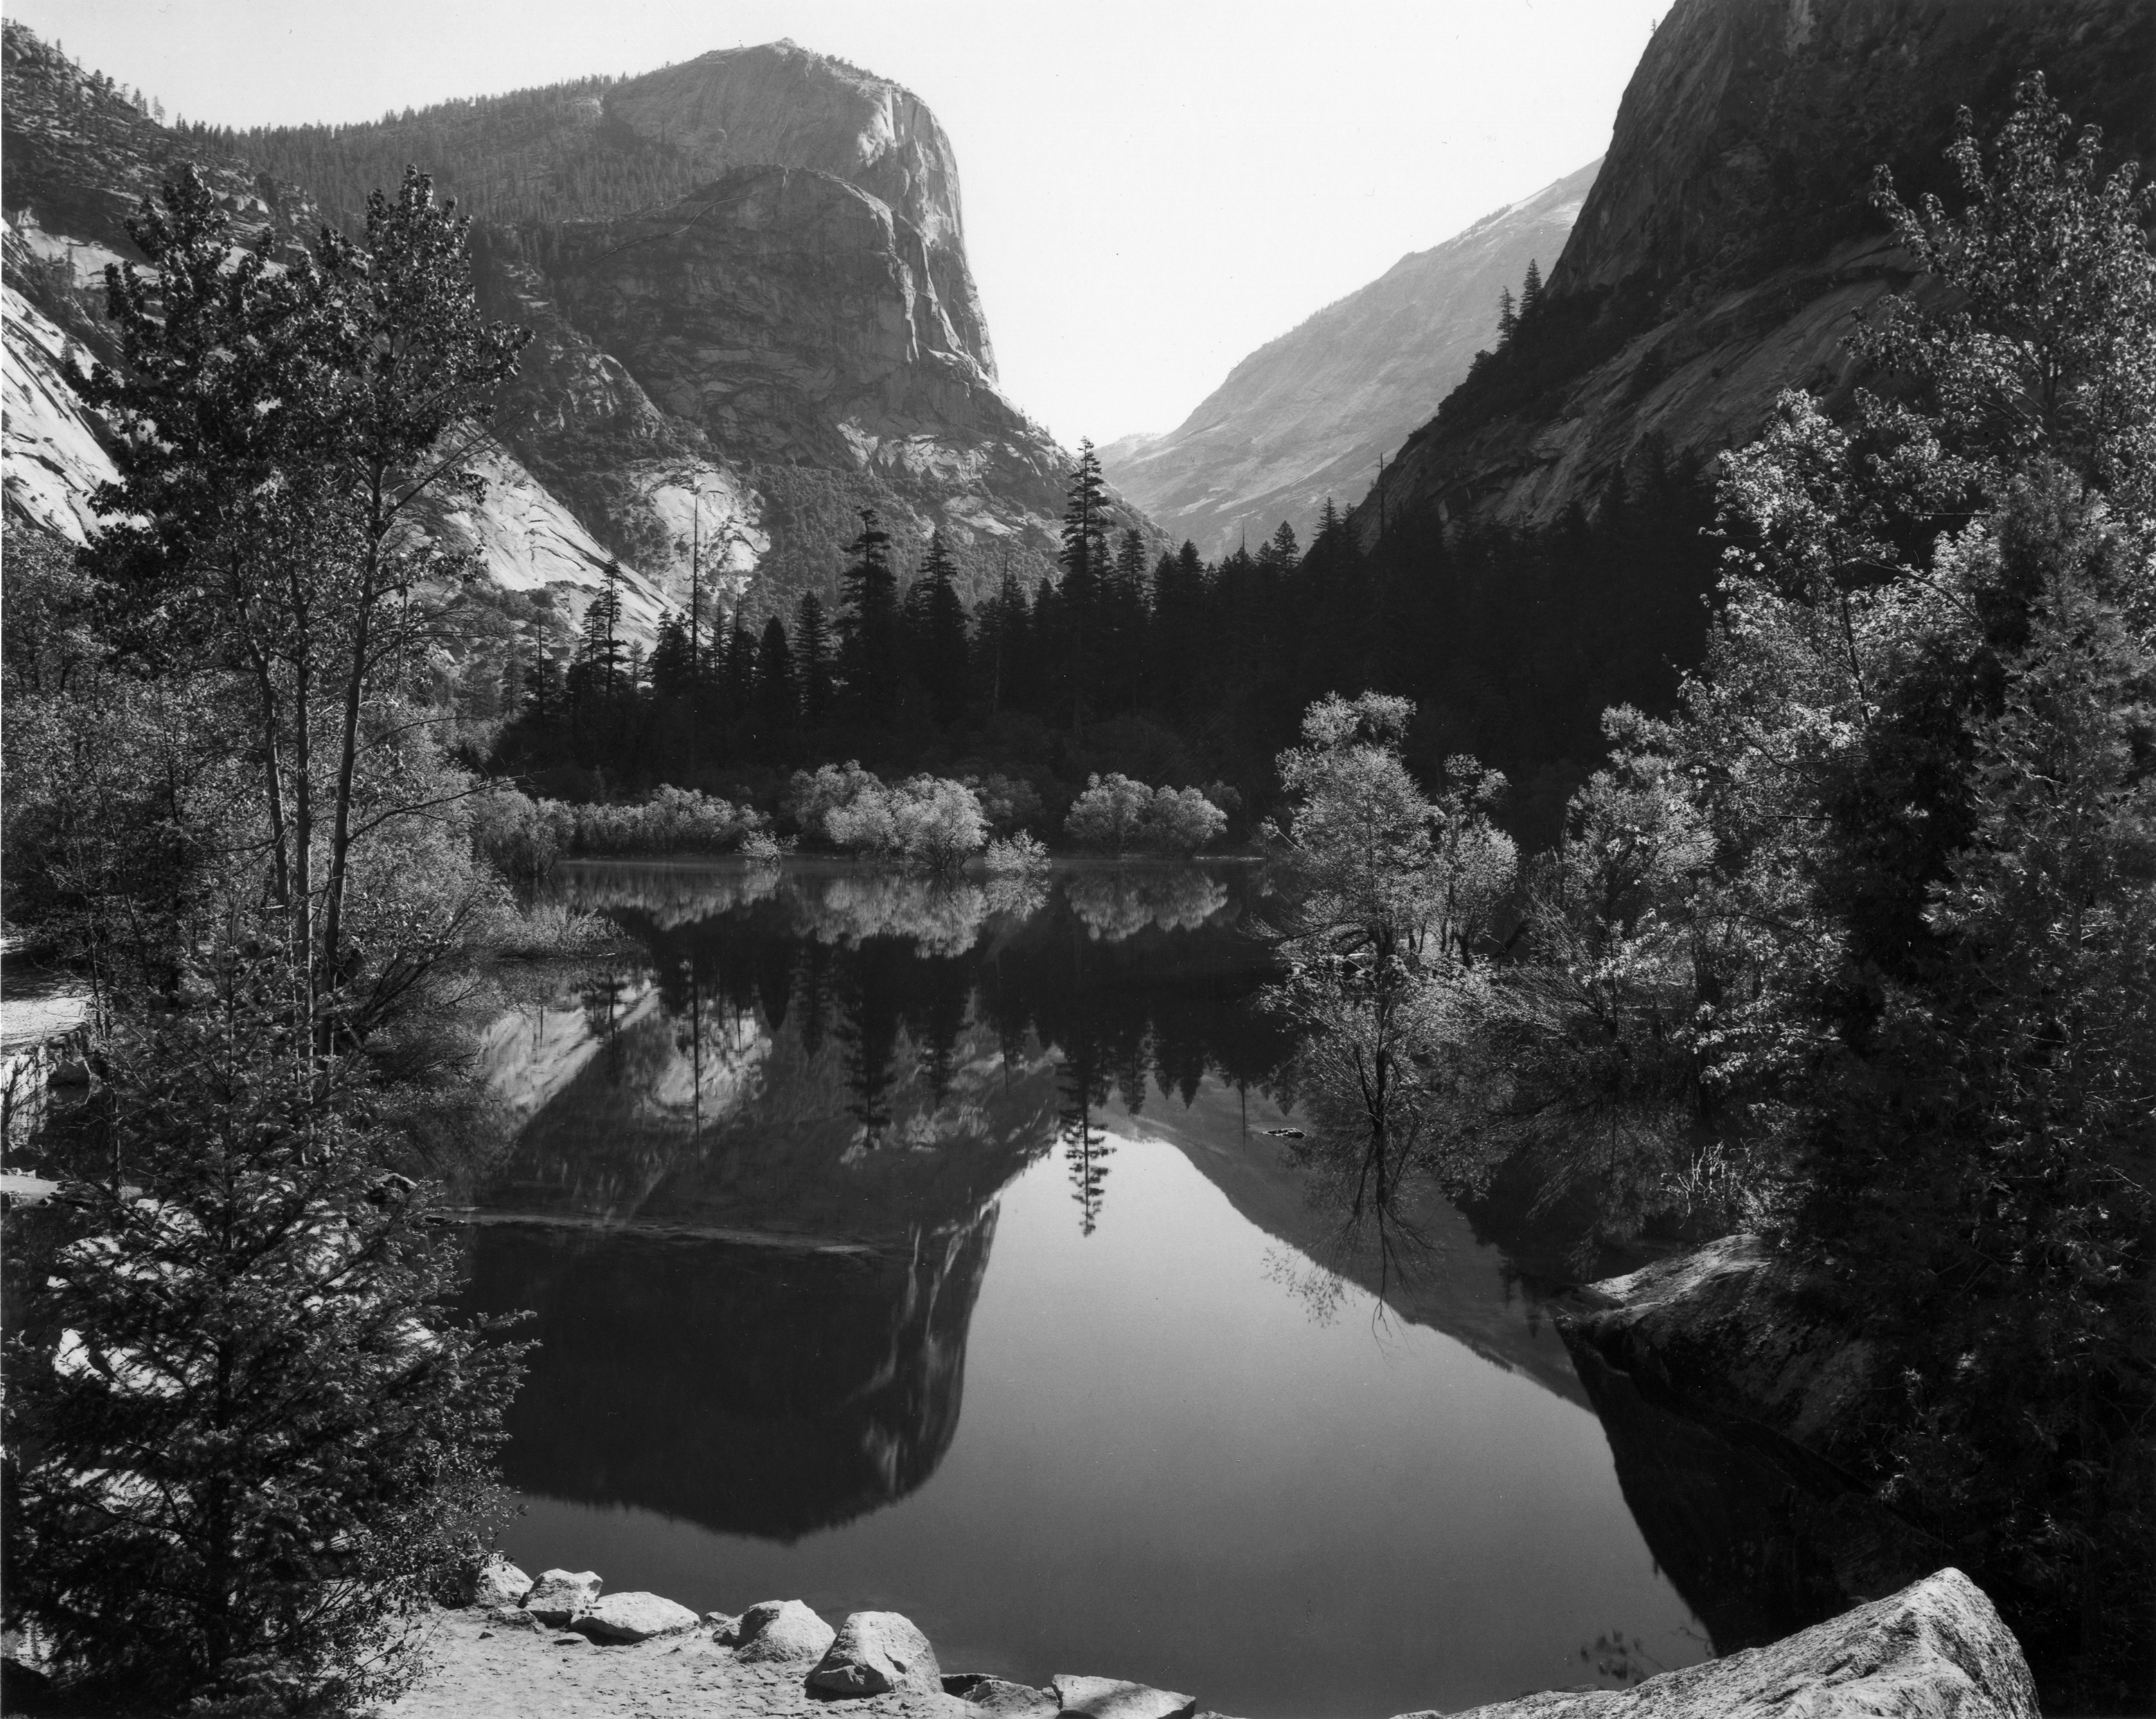 Ansel Adams Biography